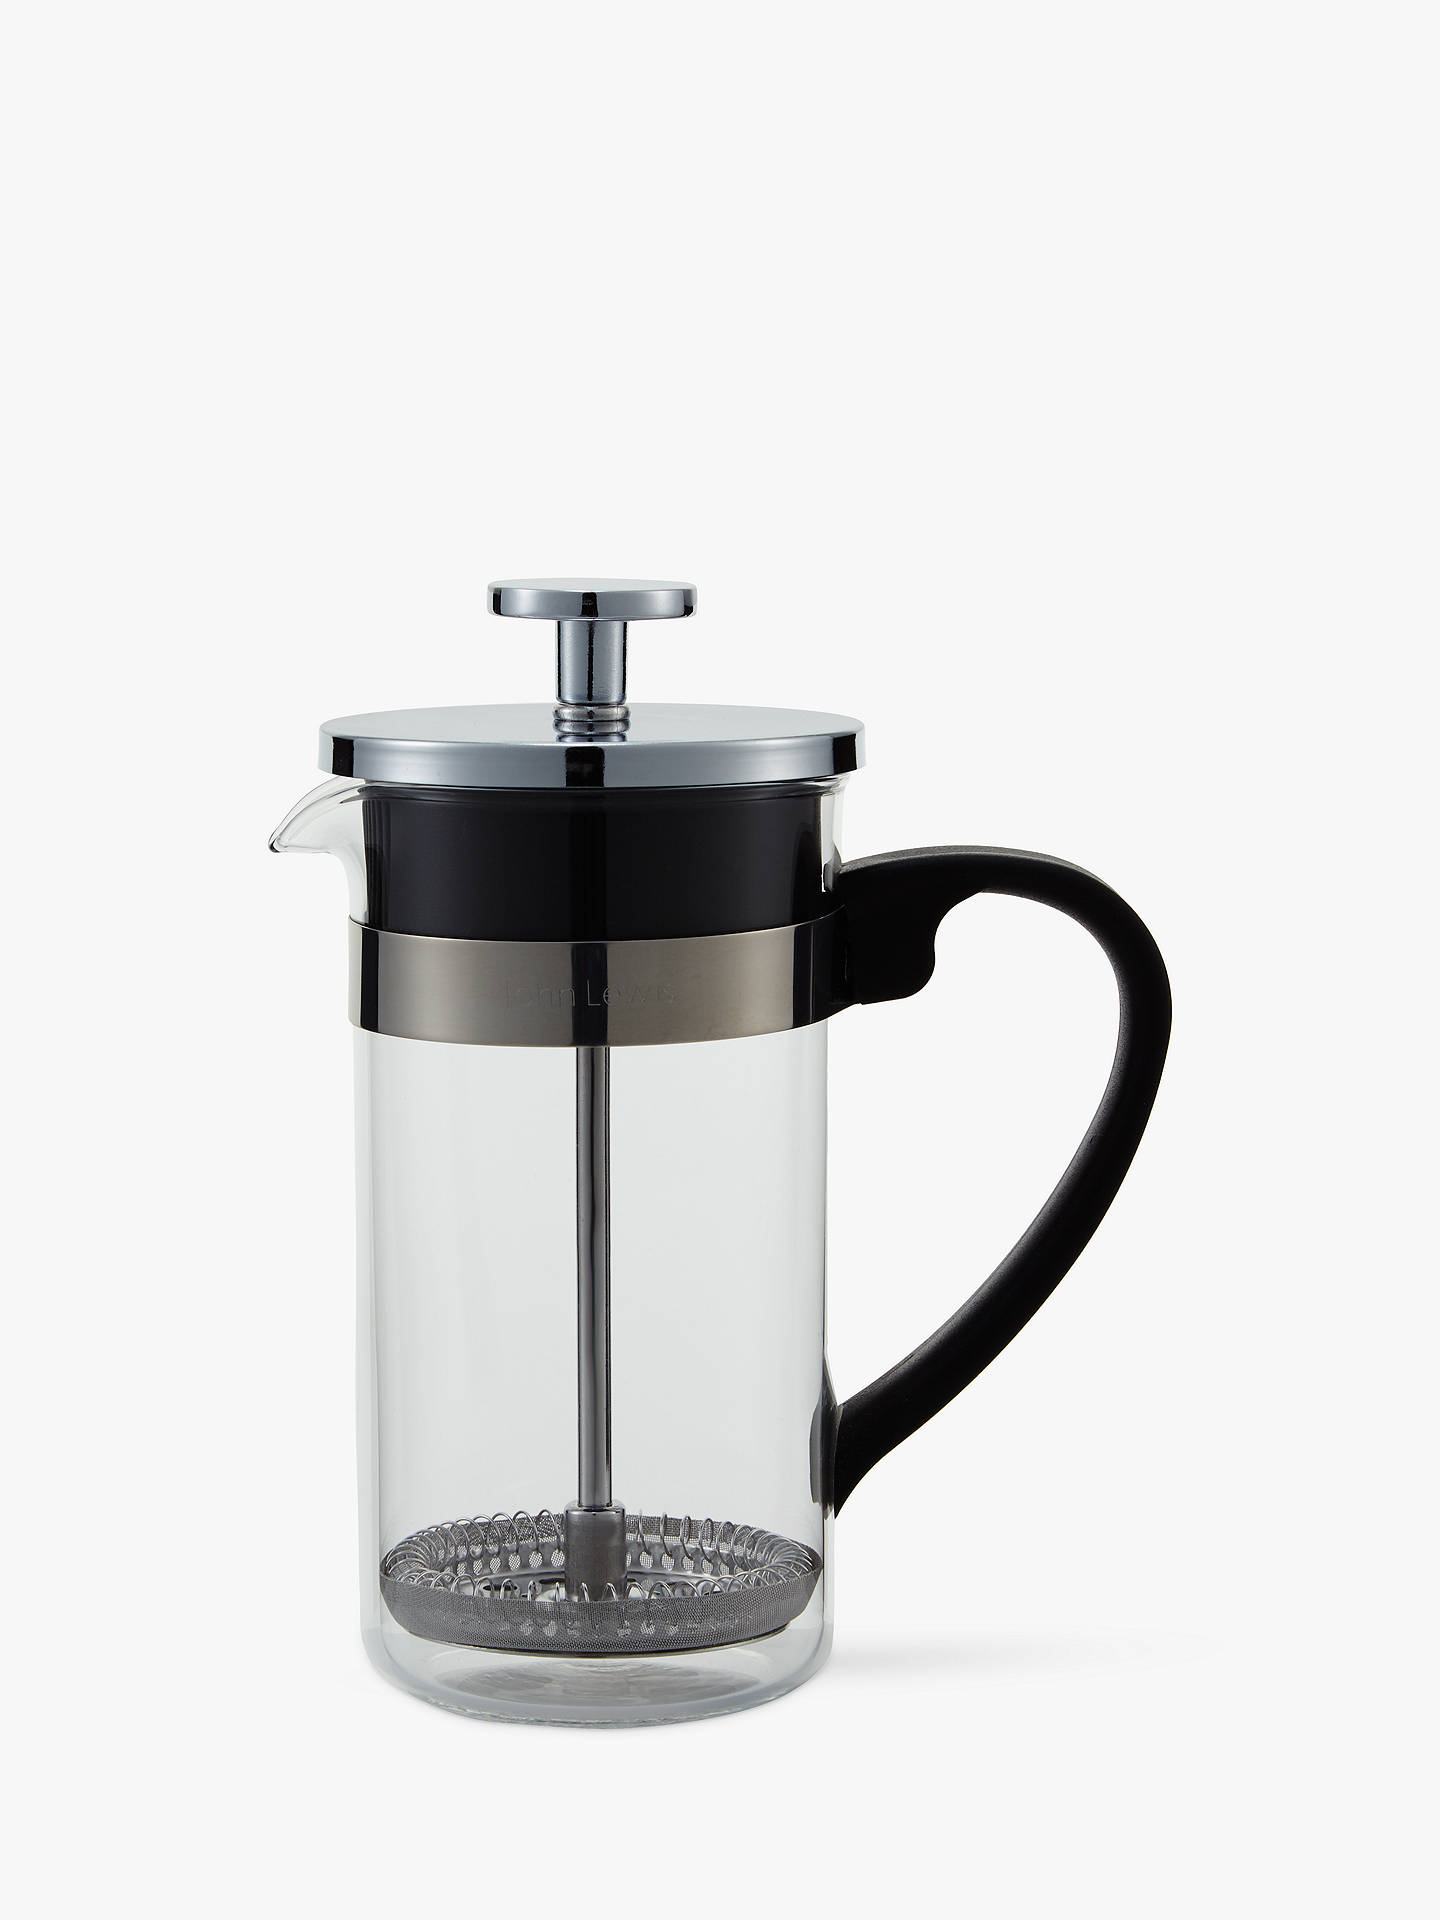 House By John Lewis Cafetiere 3 Cup